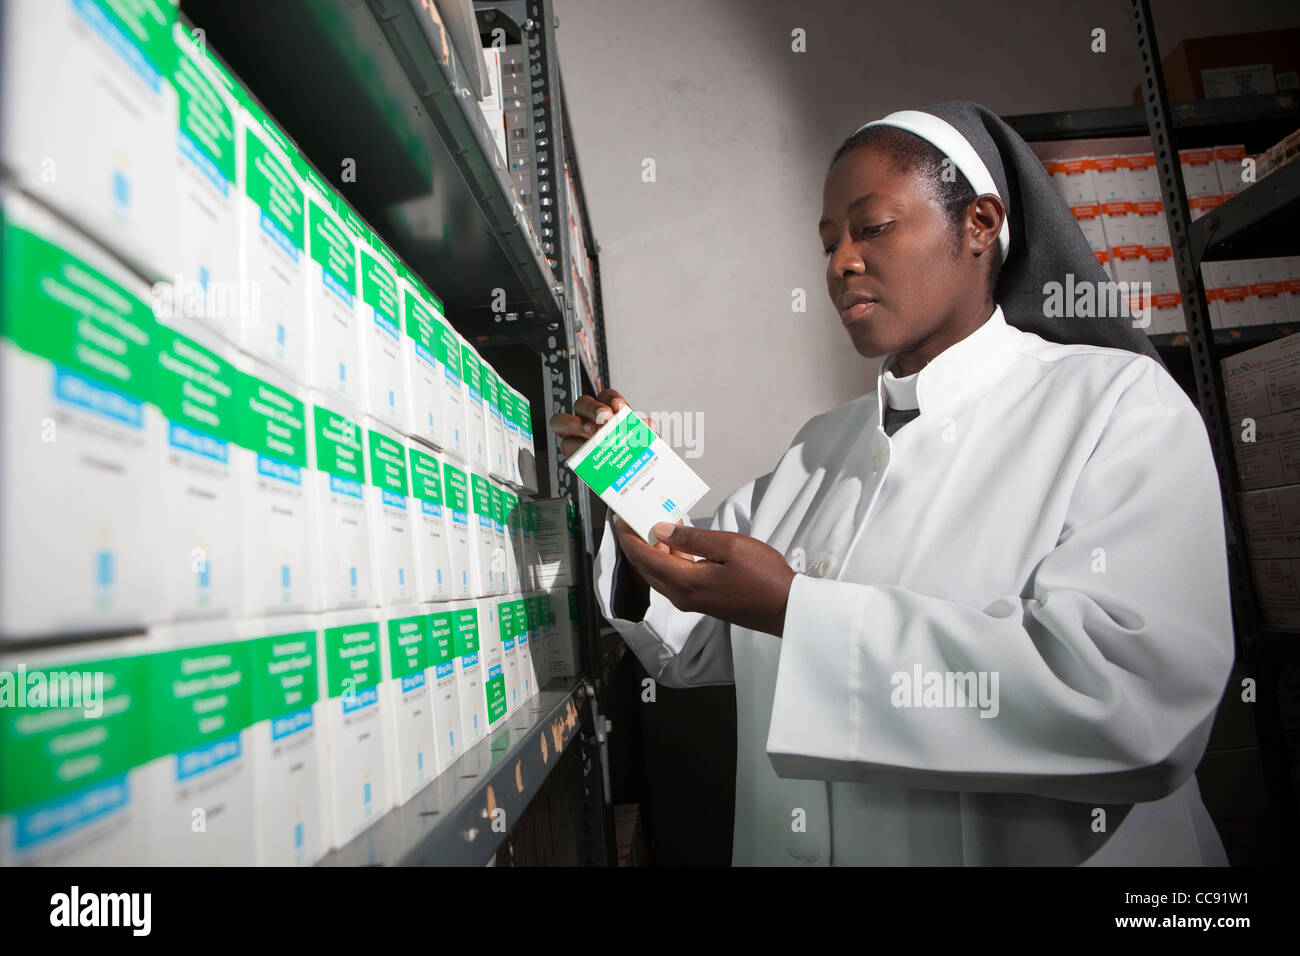 A pharmacist takes inventory of ARV medication at a Roman Catholic hospital in Ibenga, Zambia, Southern Africa. - Stock Image